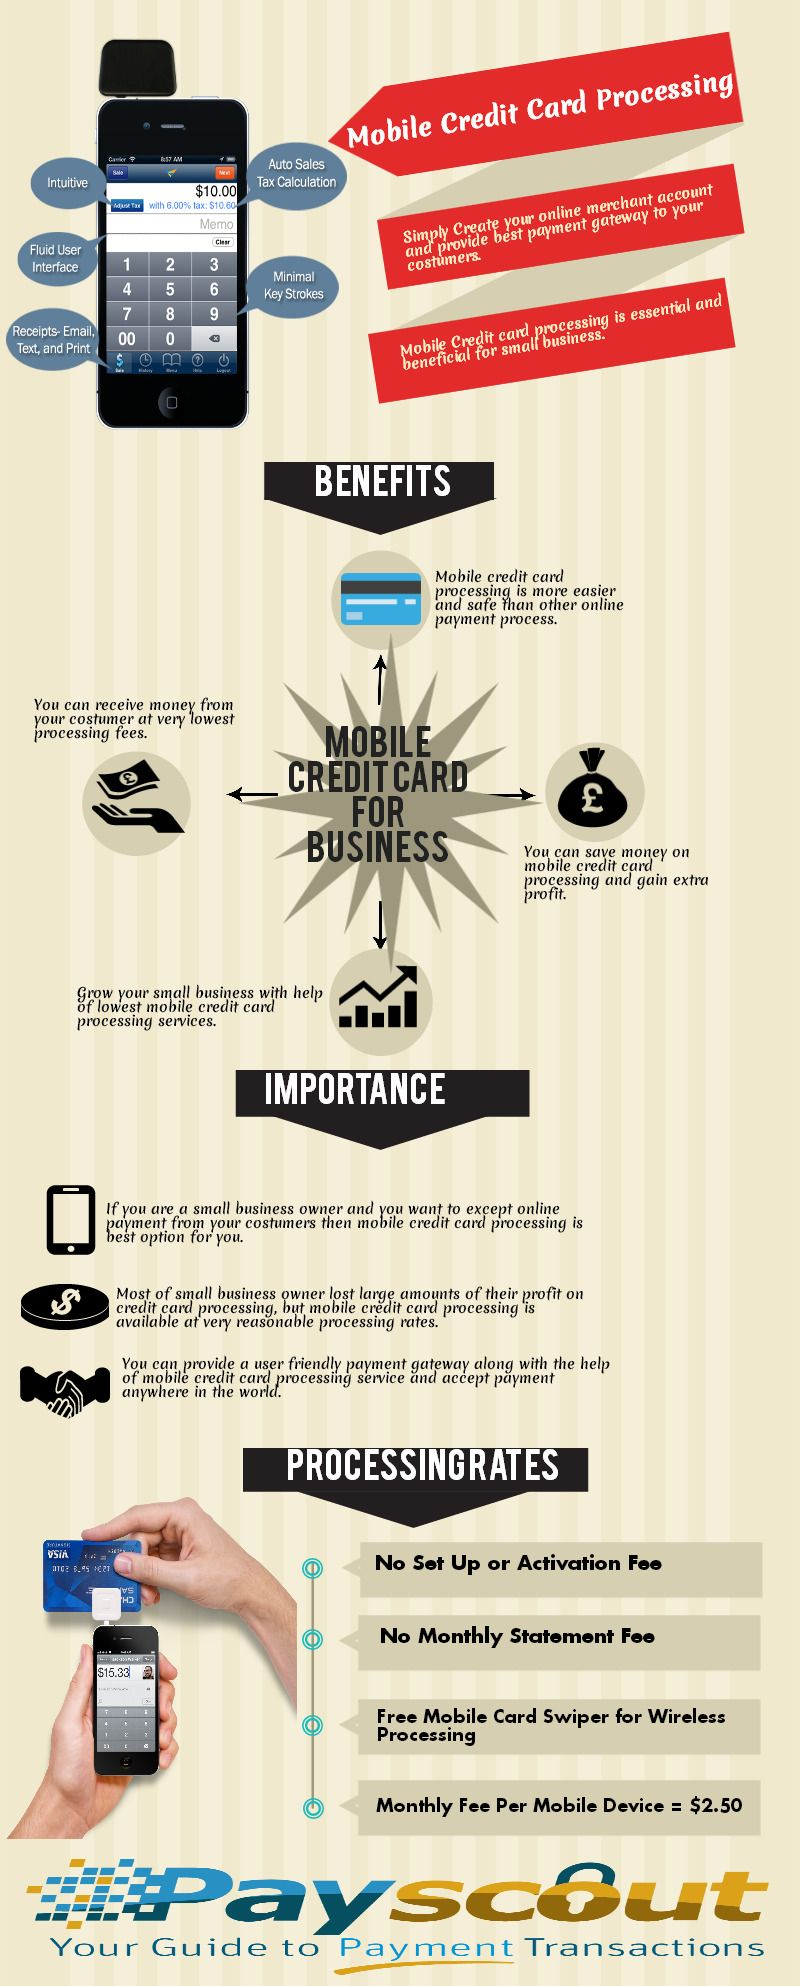 Mobile Credit Card Processing Mobile Merchant Account Mobile Credit Card Best Credit Cards Credit Card Infographic